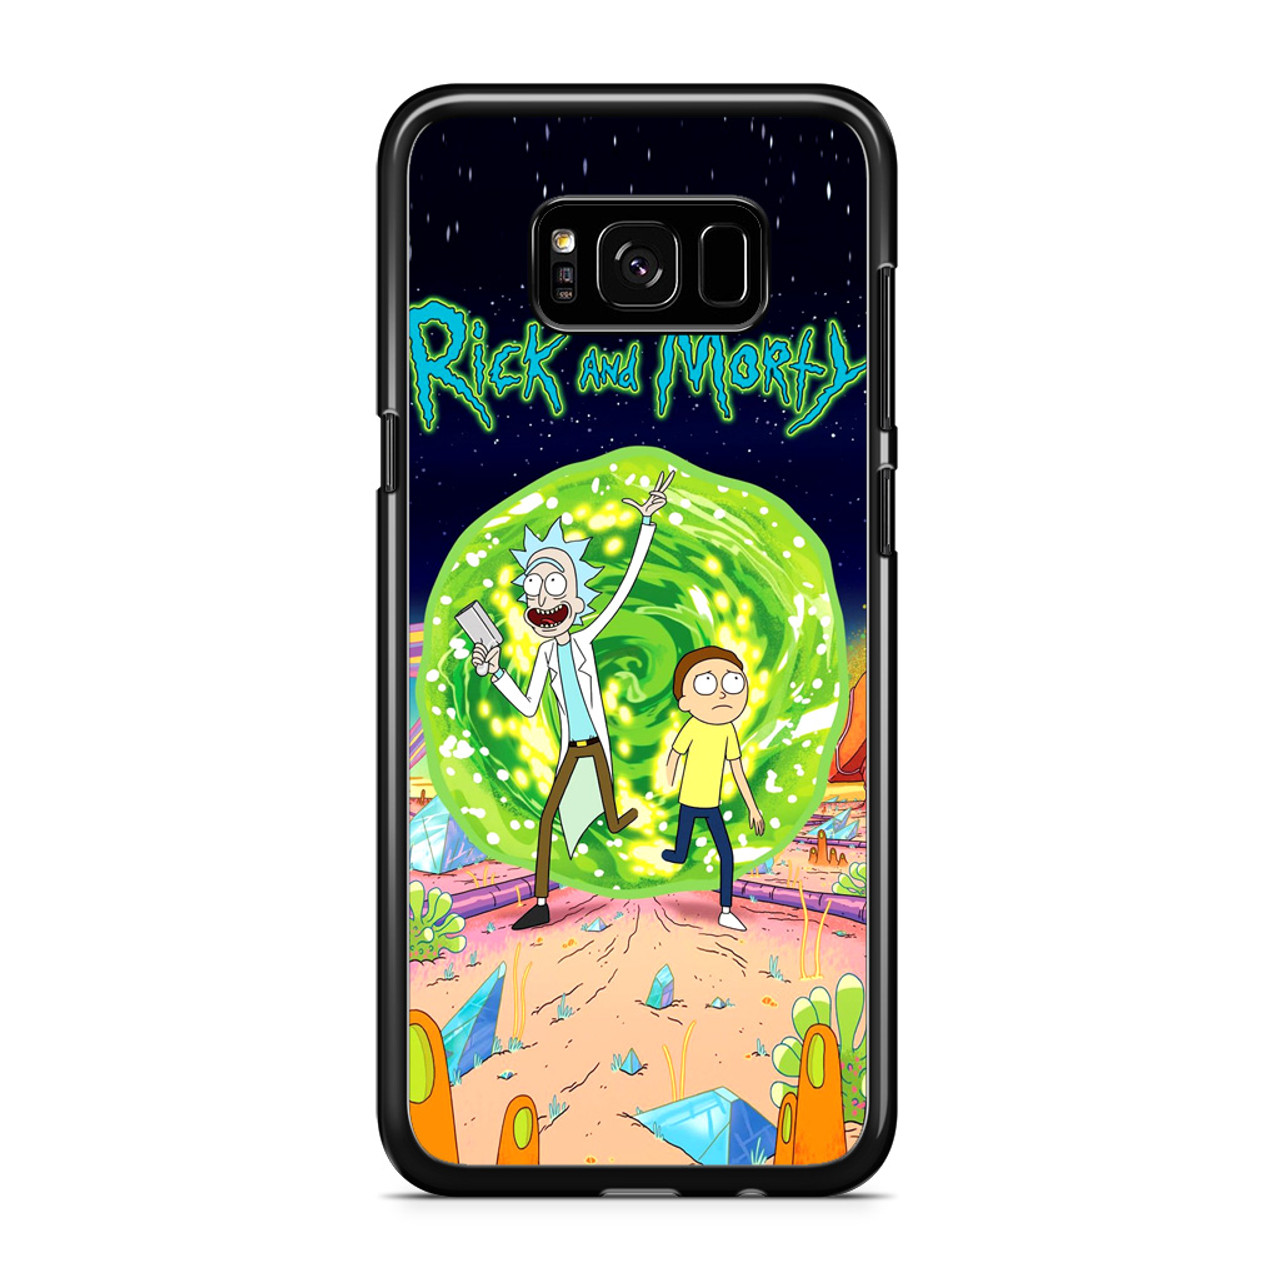 low priced 2b57e 29851 Rick and Morty Poster Samsung Galaxy S8 Case